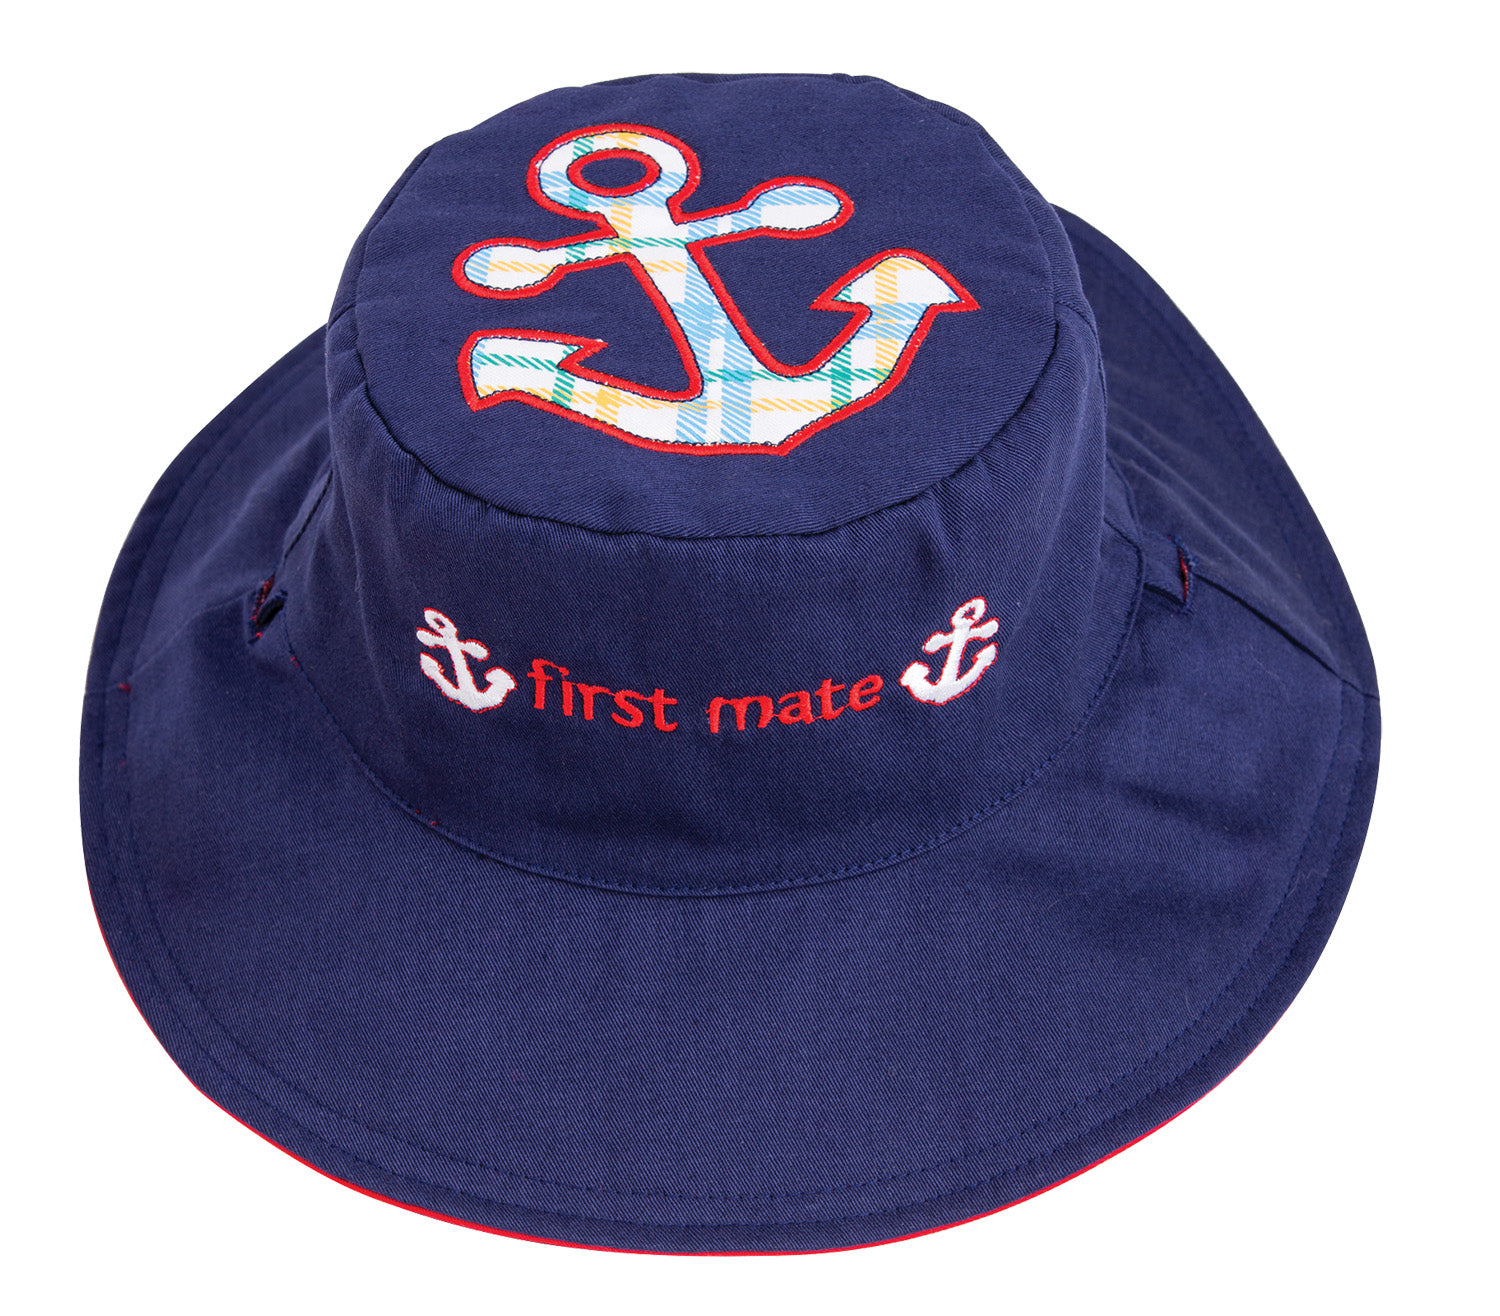 Kids' Sunhat - Anchor/Sailboat